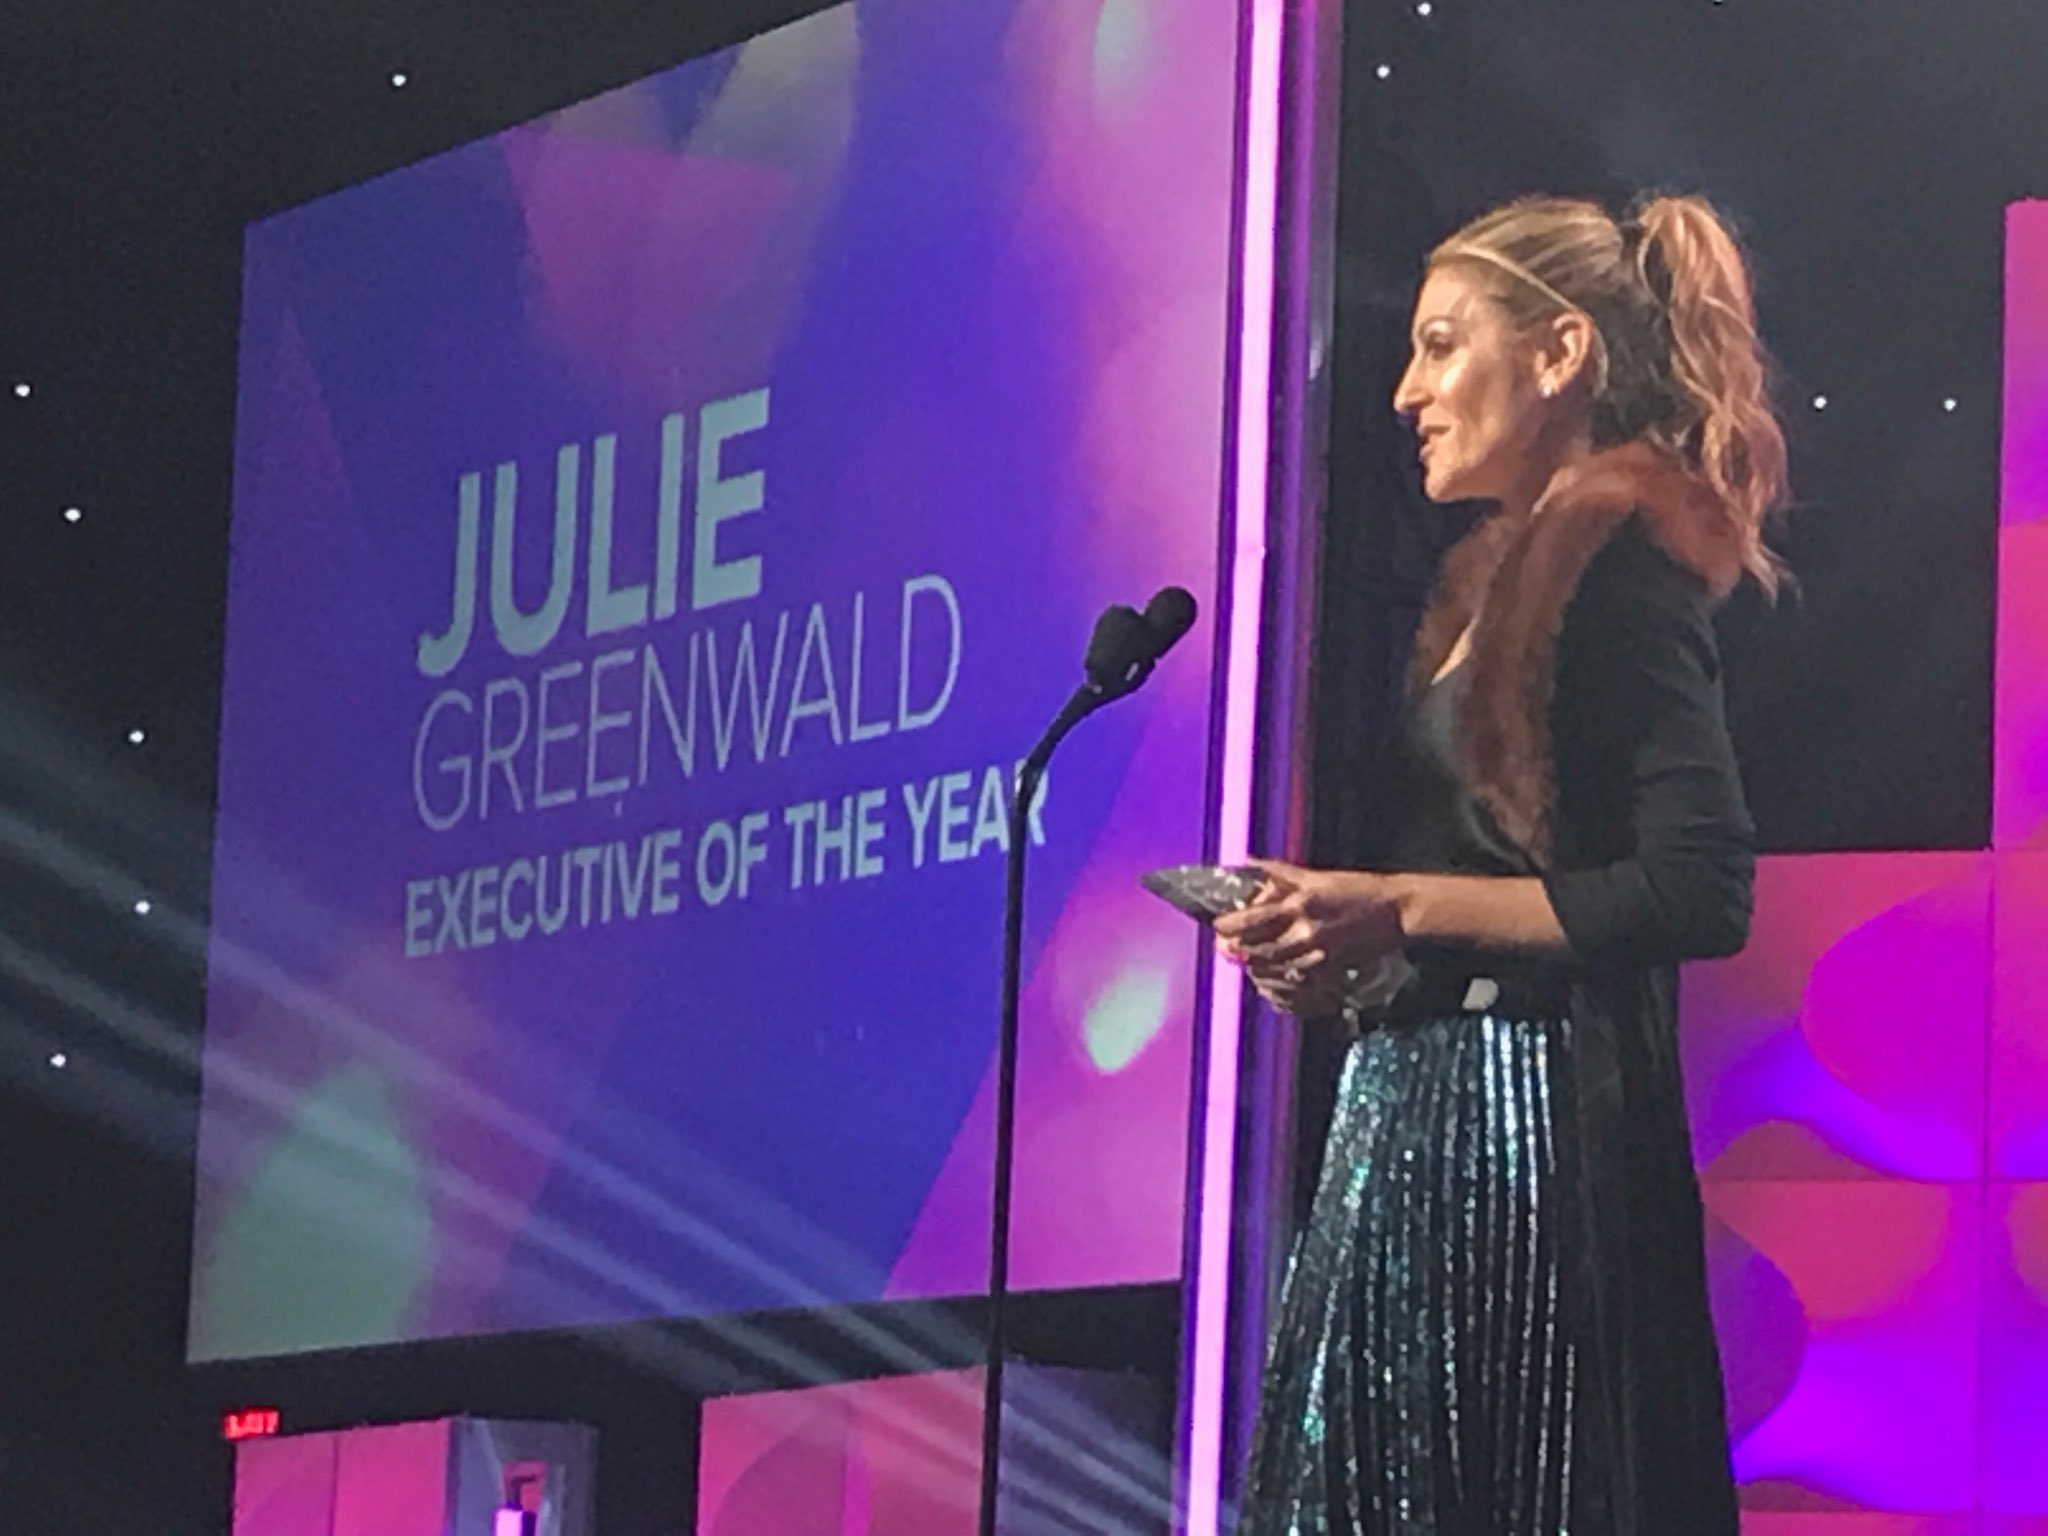 julie greenwald at the woman in music awards